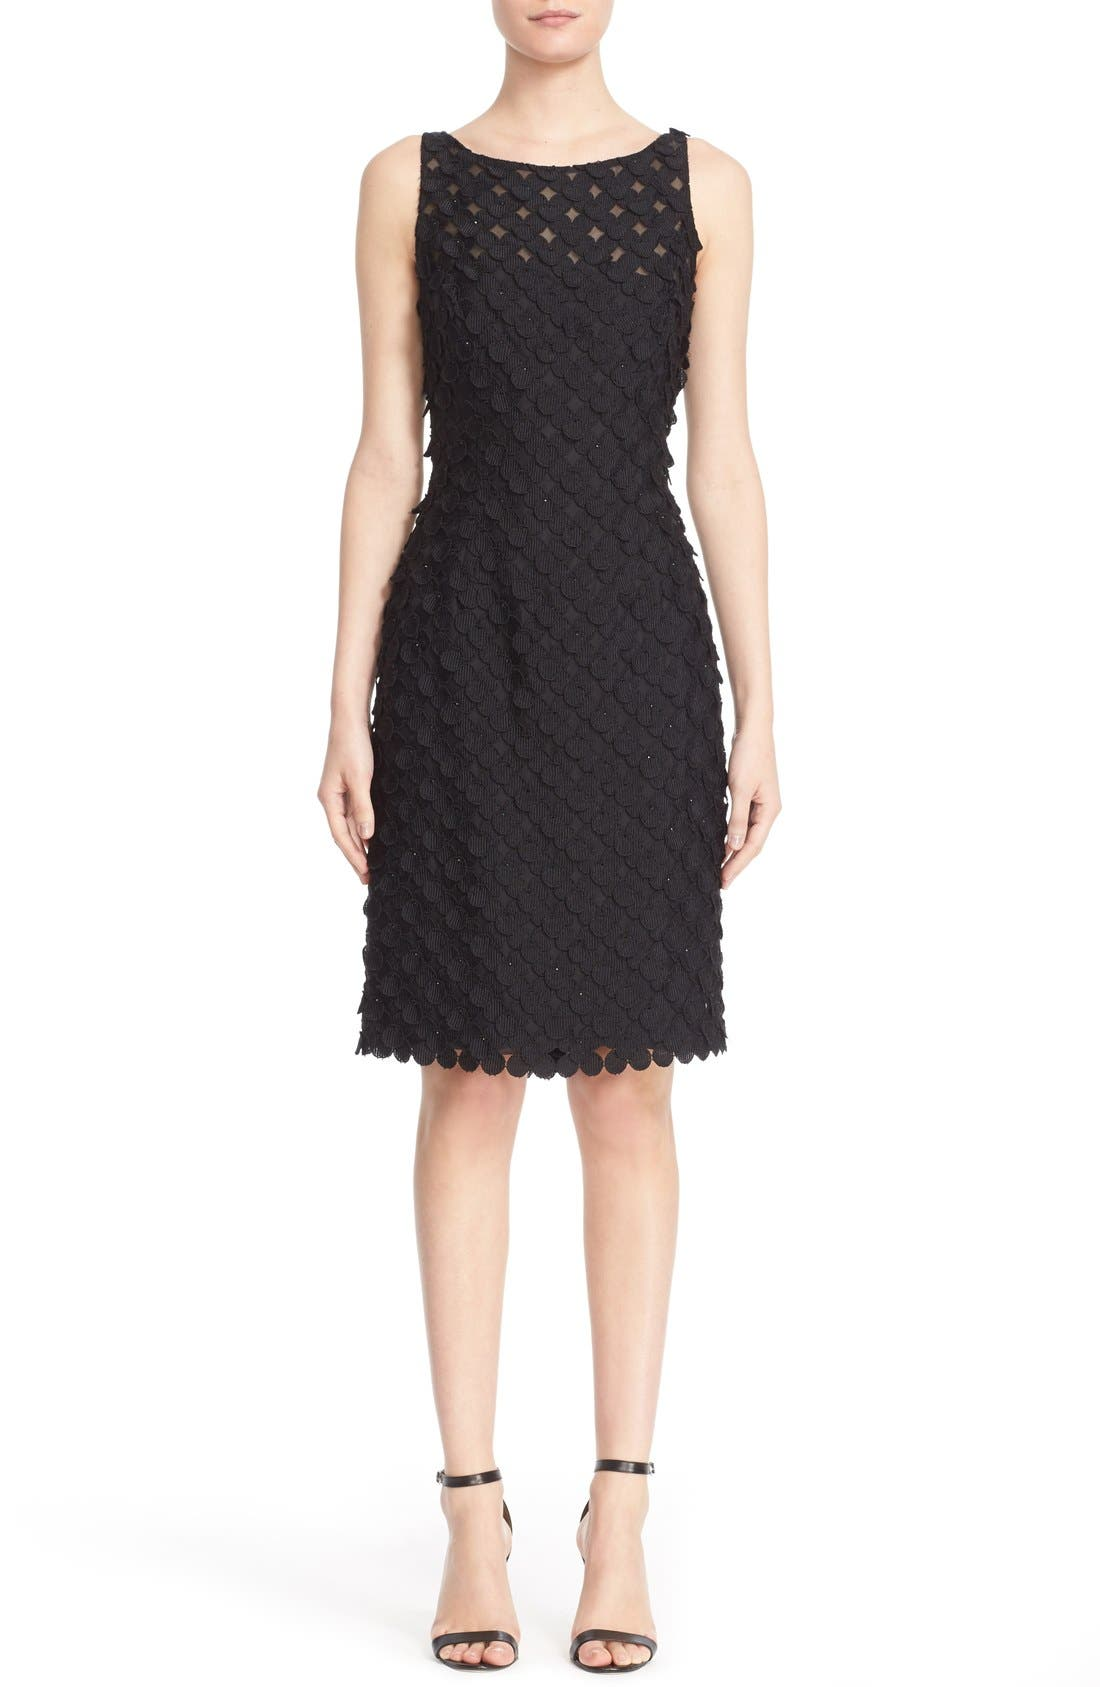 Carmen Marc Valvo Couture Circle Appliqué Sleeveless Sheath Dress